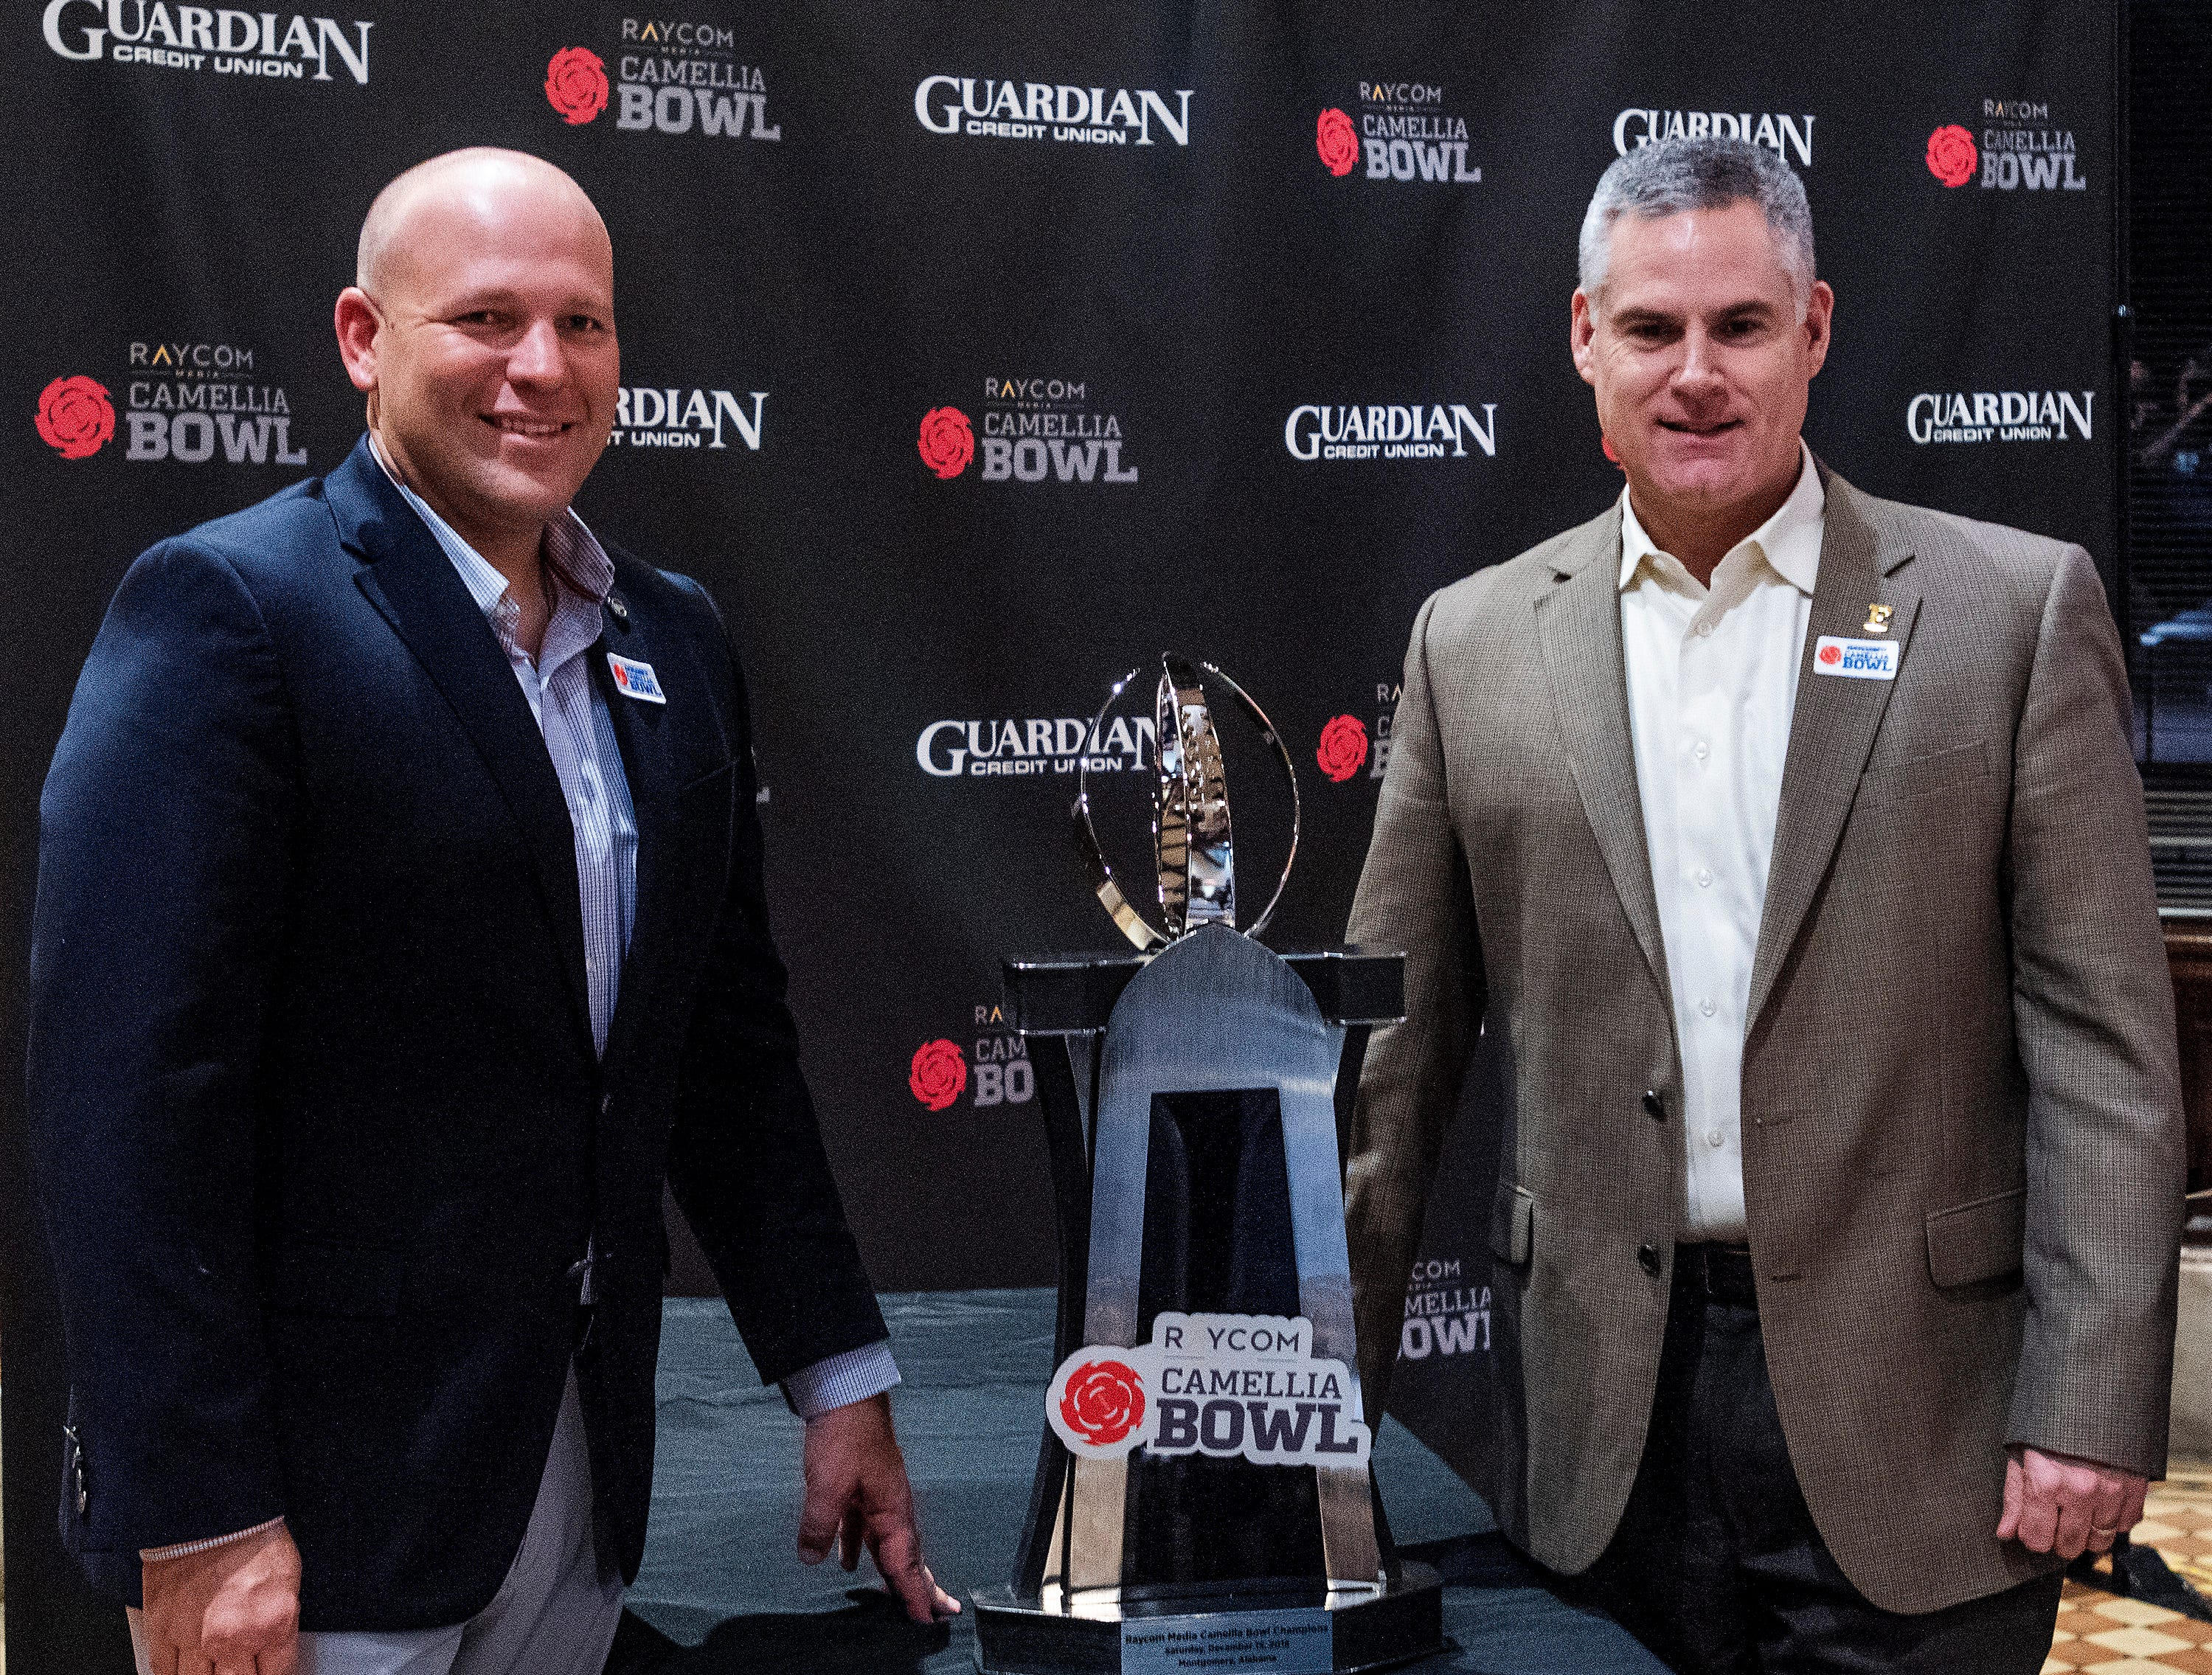 Georgia Southern head coach Chad Lunsford  and Eastern Michigan head coach Chris Creighton pose with the trophy  at the Camellia Bowl Coaches Press Conference in Montgomery, Ala., on Tuesday December 11, 2018.